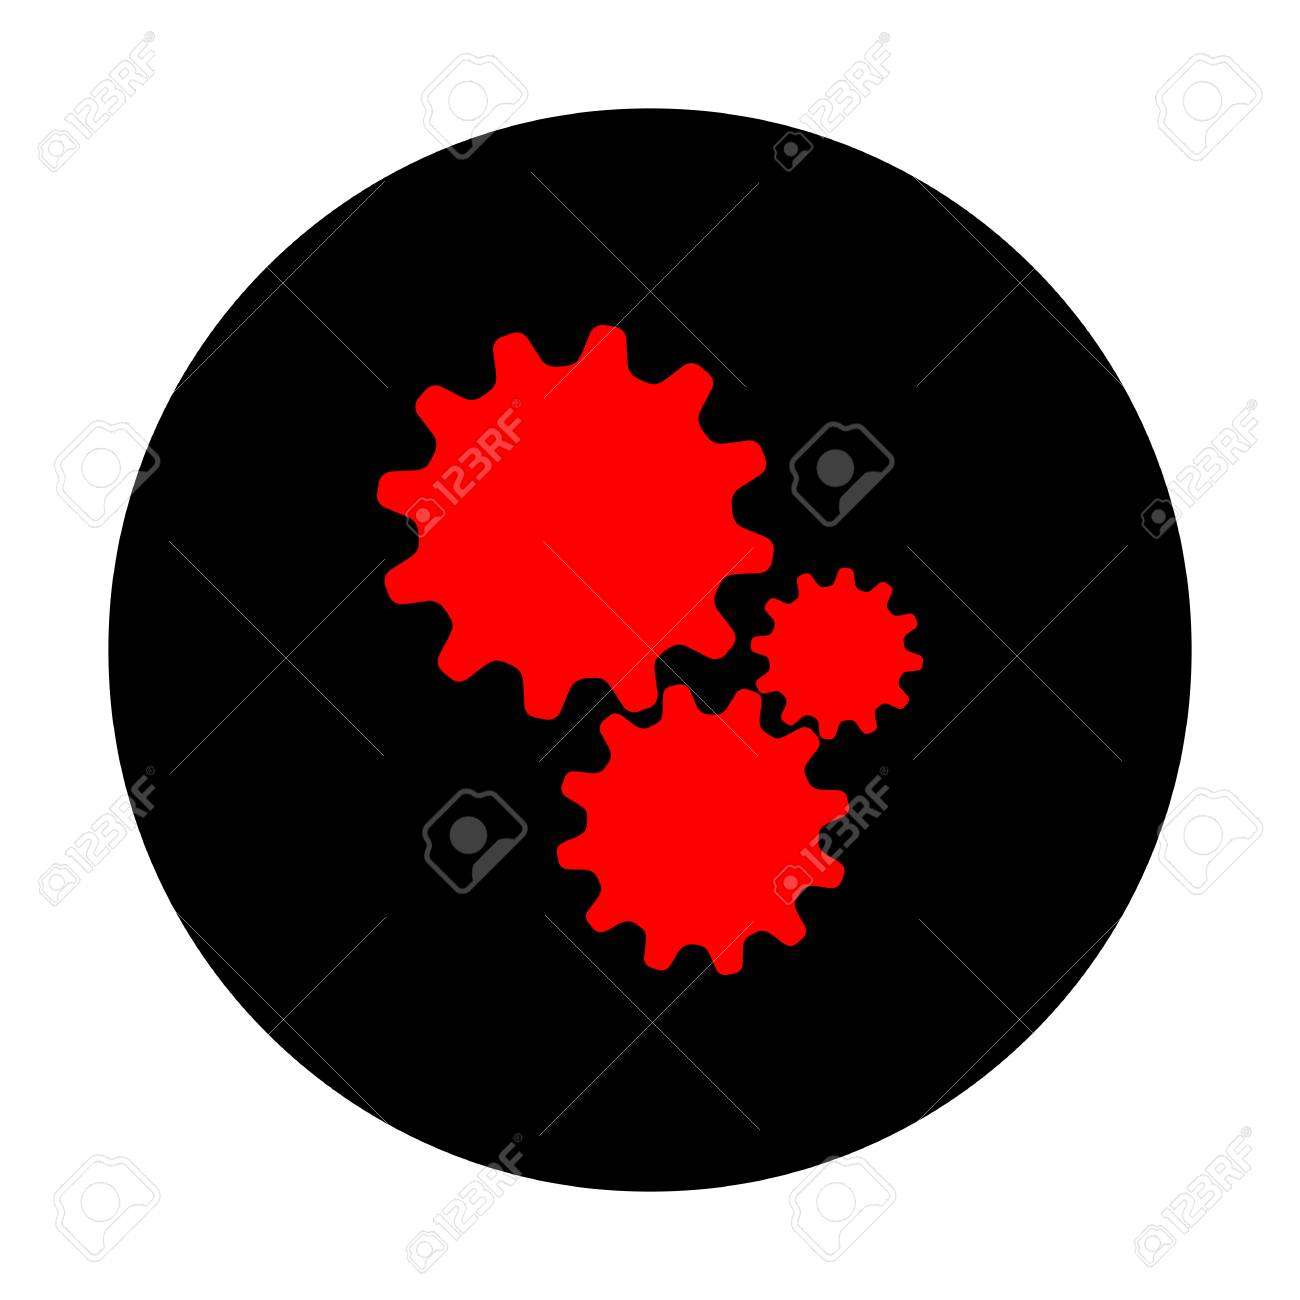 Settings Sign Red Vector Icon On Black Flat Circle Royalty Free Cliparts Vectors And Stock Illustration Image 56829923